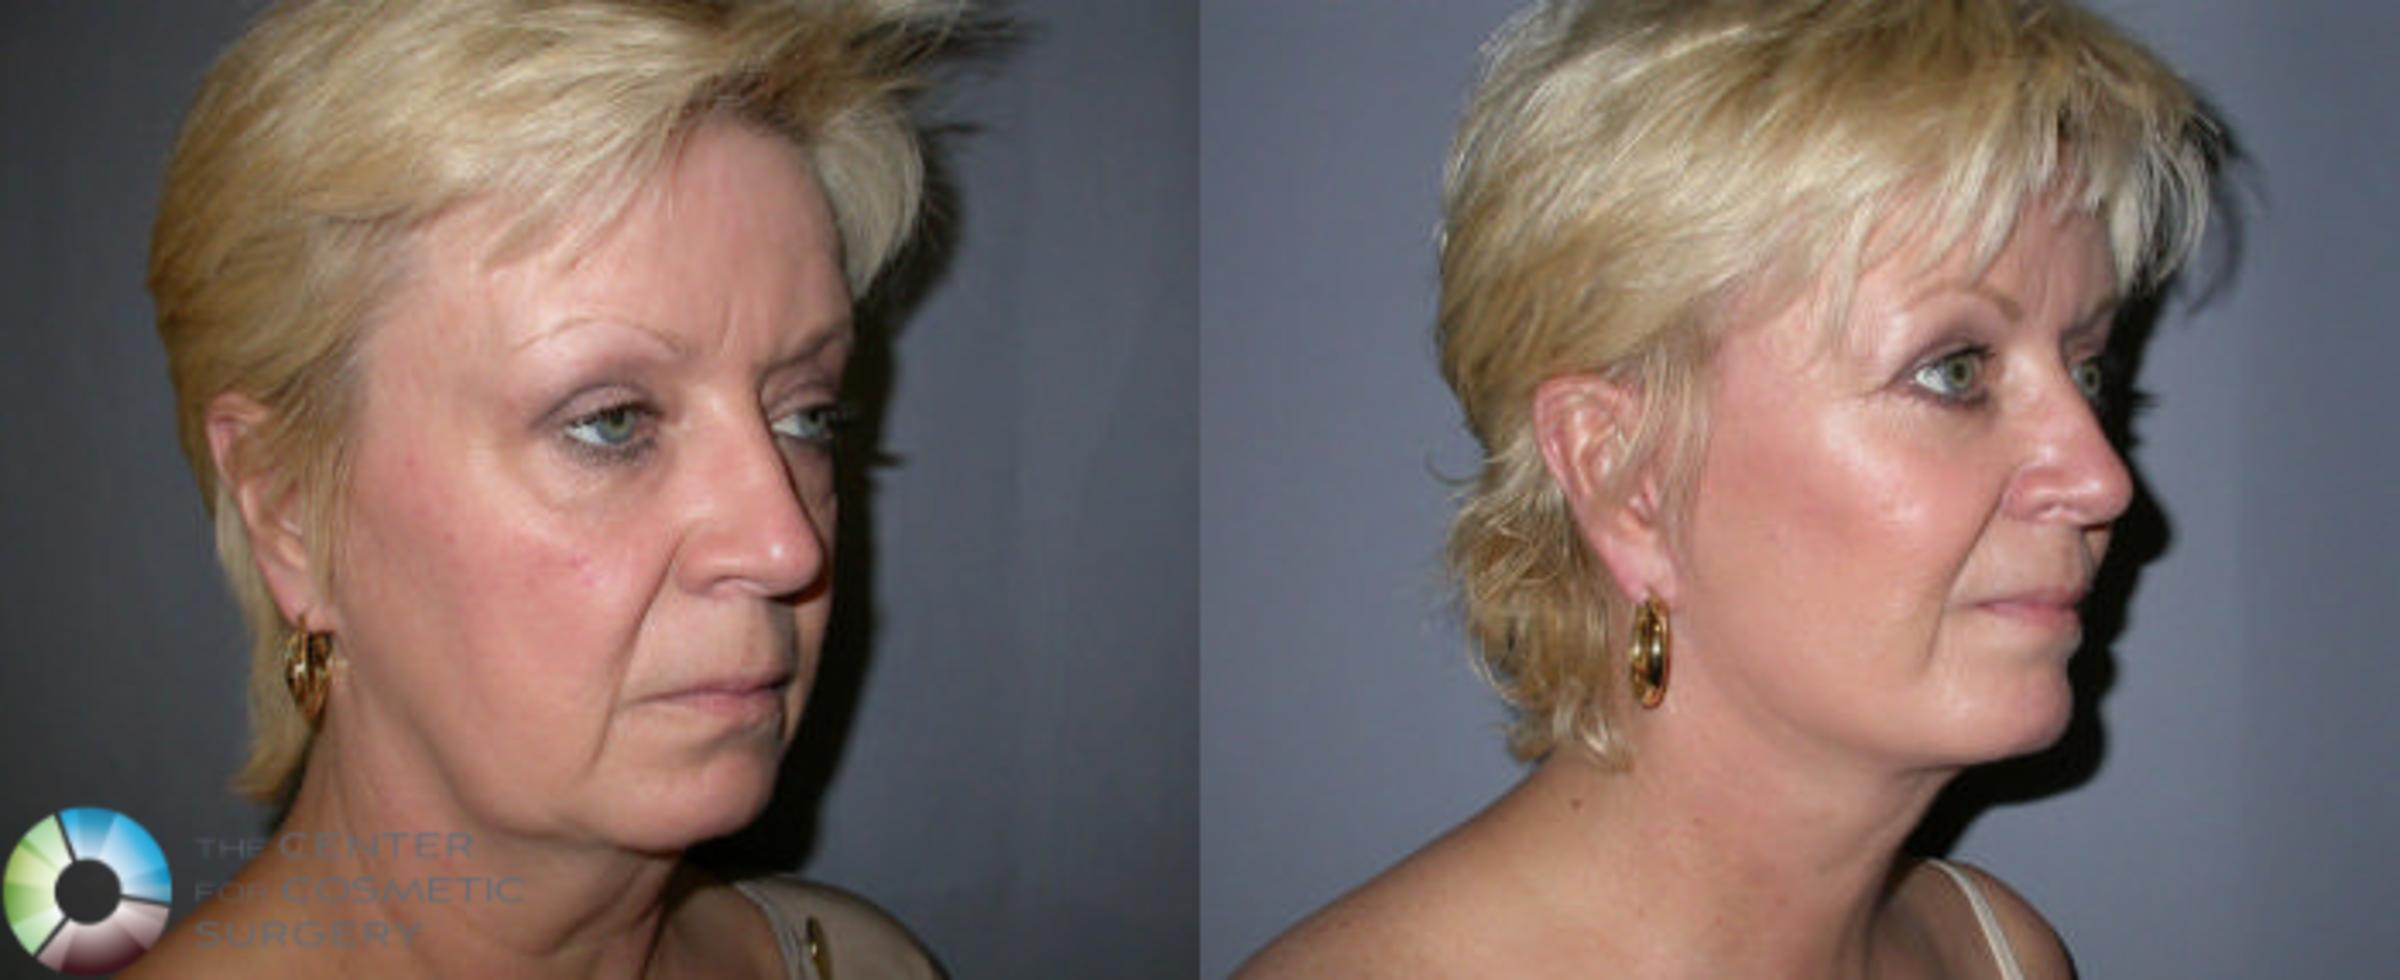 Mini Facelift Case 2 Before & After View #1 | Golden, CO | The Center for Cosmetic Surgery